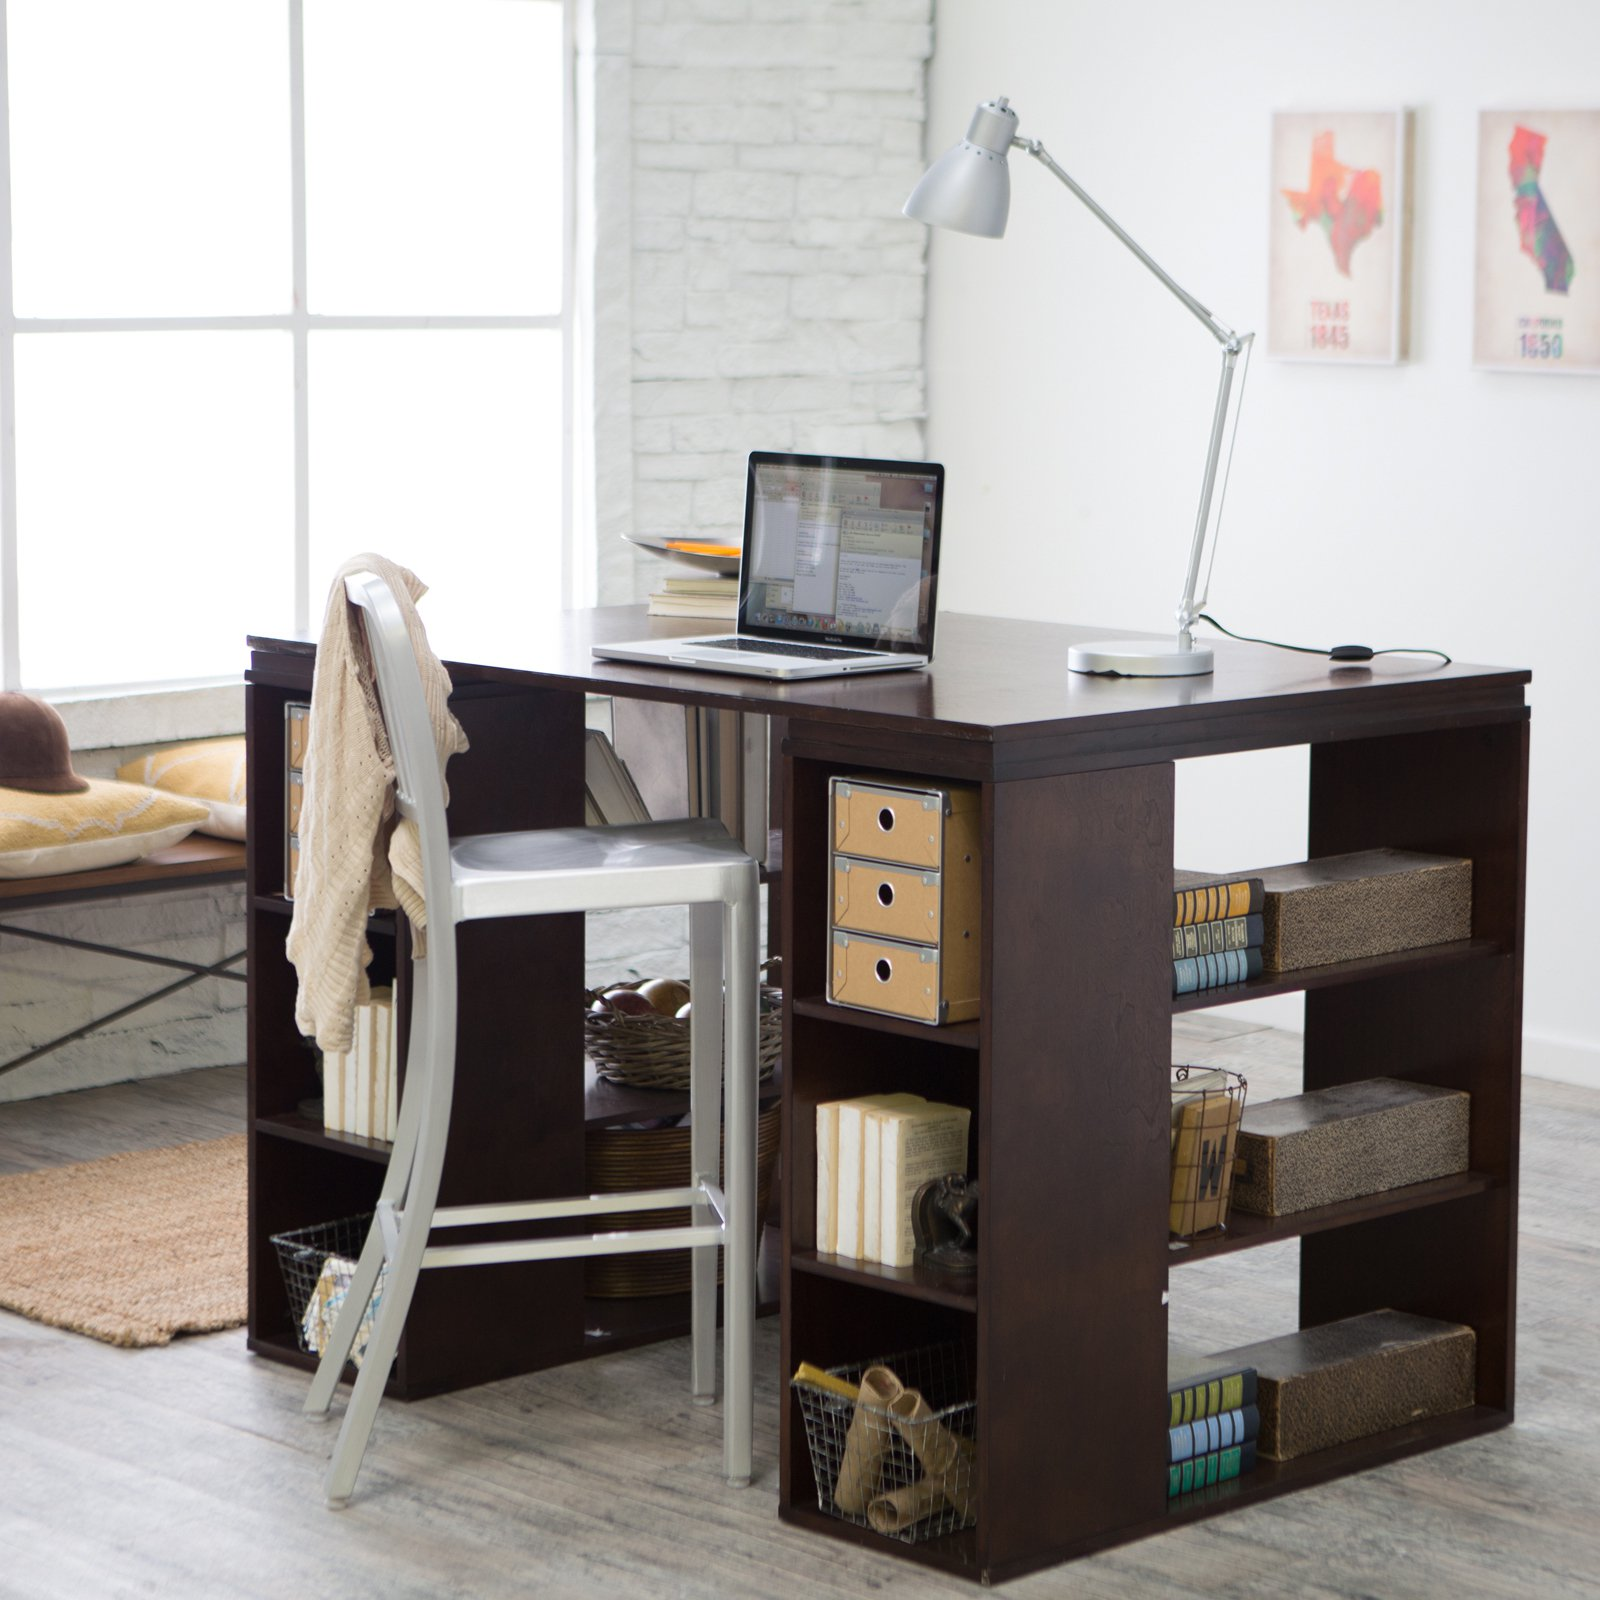 Belham living sullivan counter height desk espresso walmart com